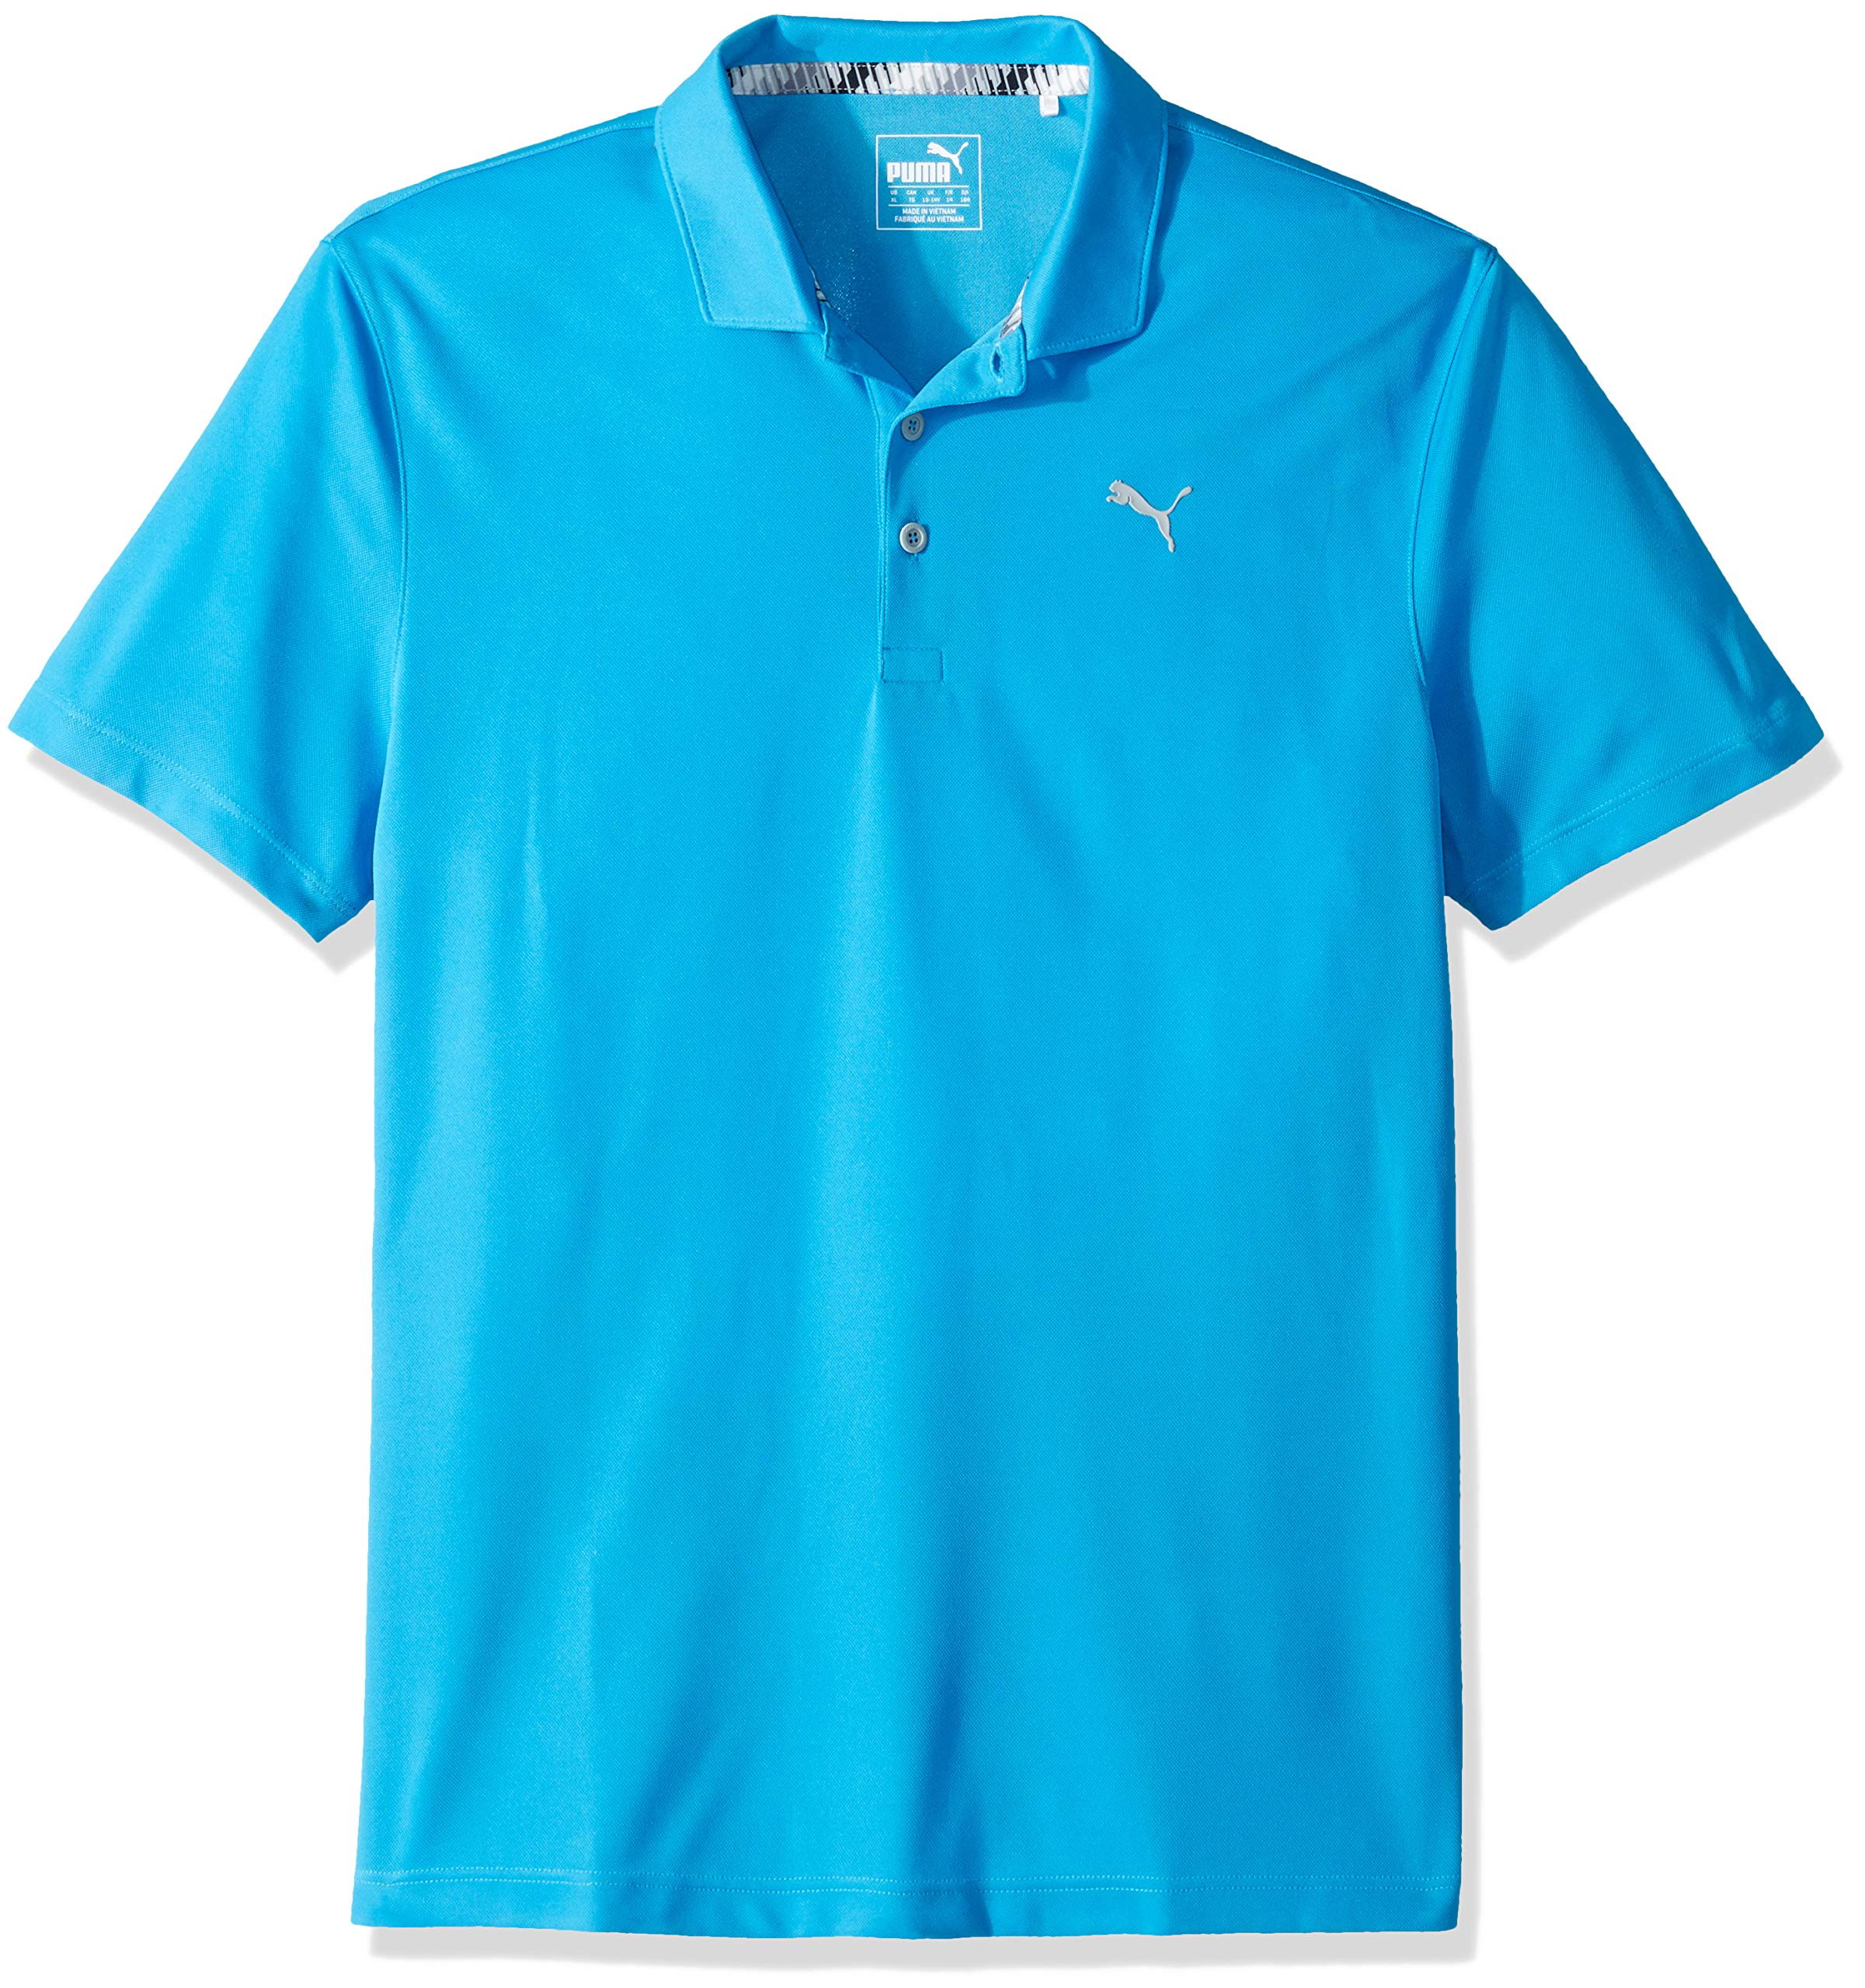 Puma Golf Boys 2019 Polo, Bleu Azure, Large by PUMA